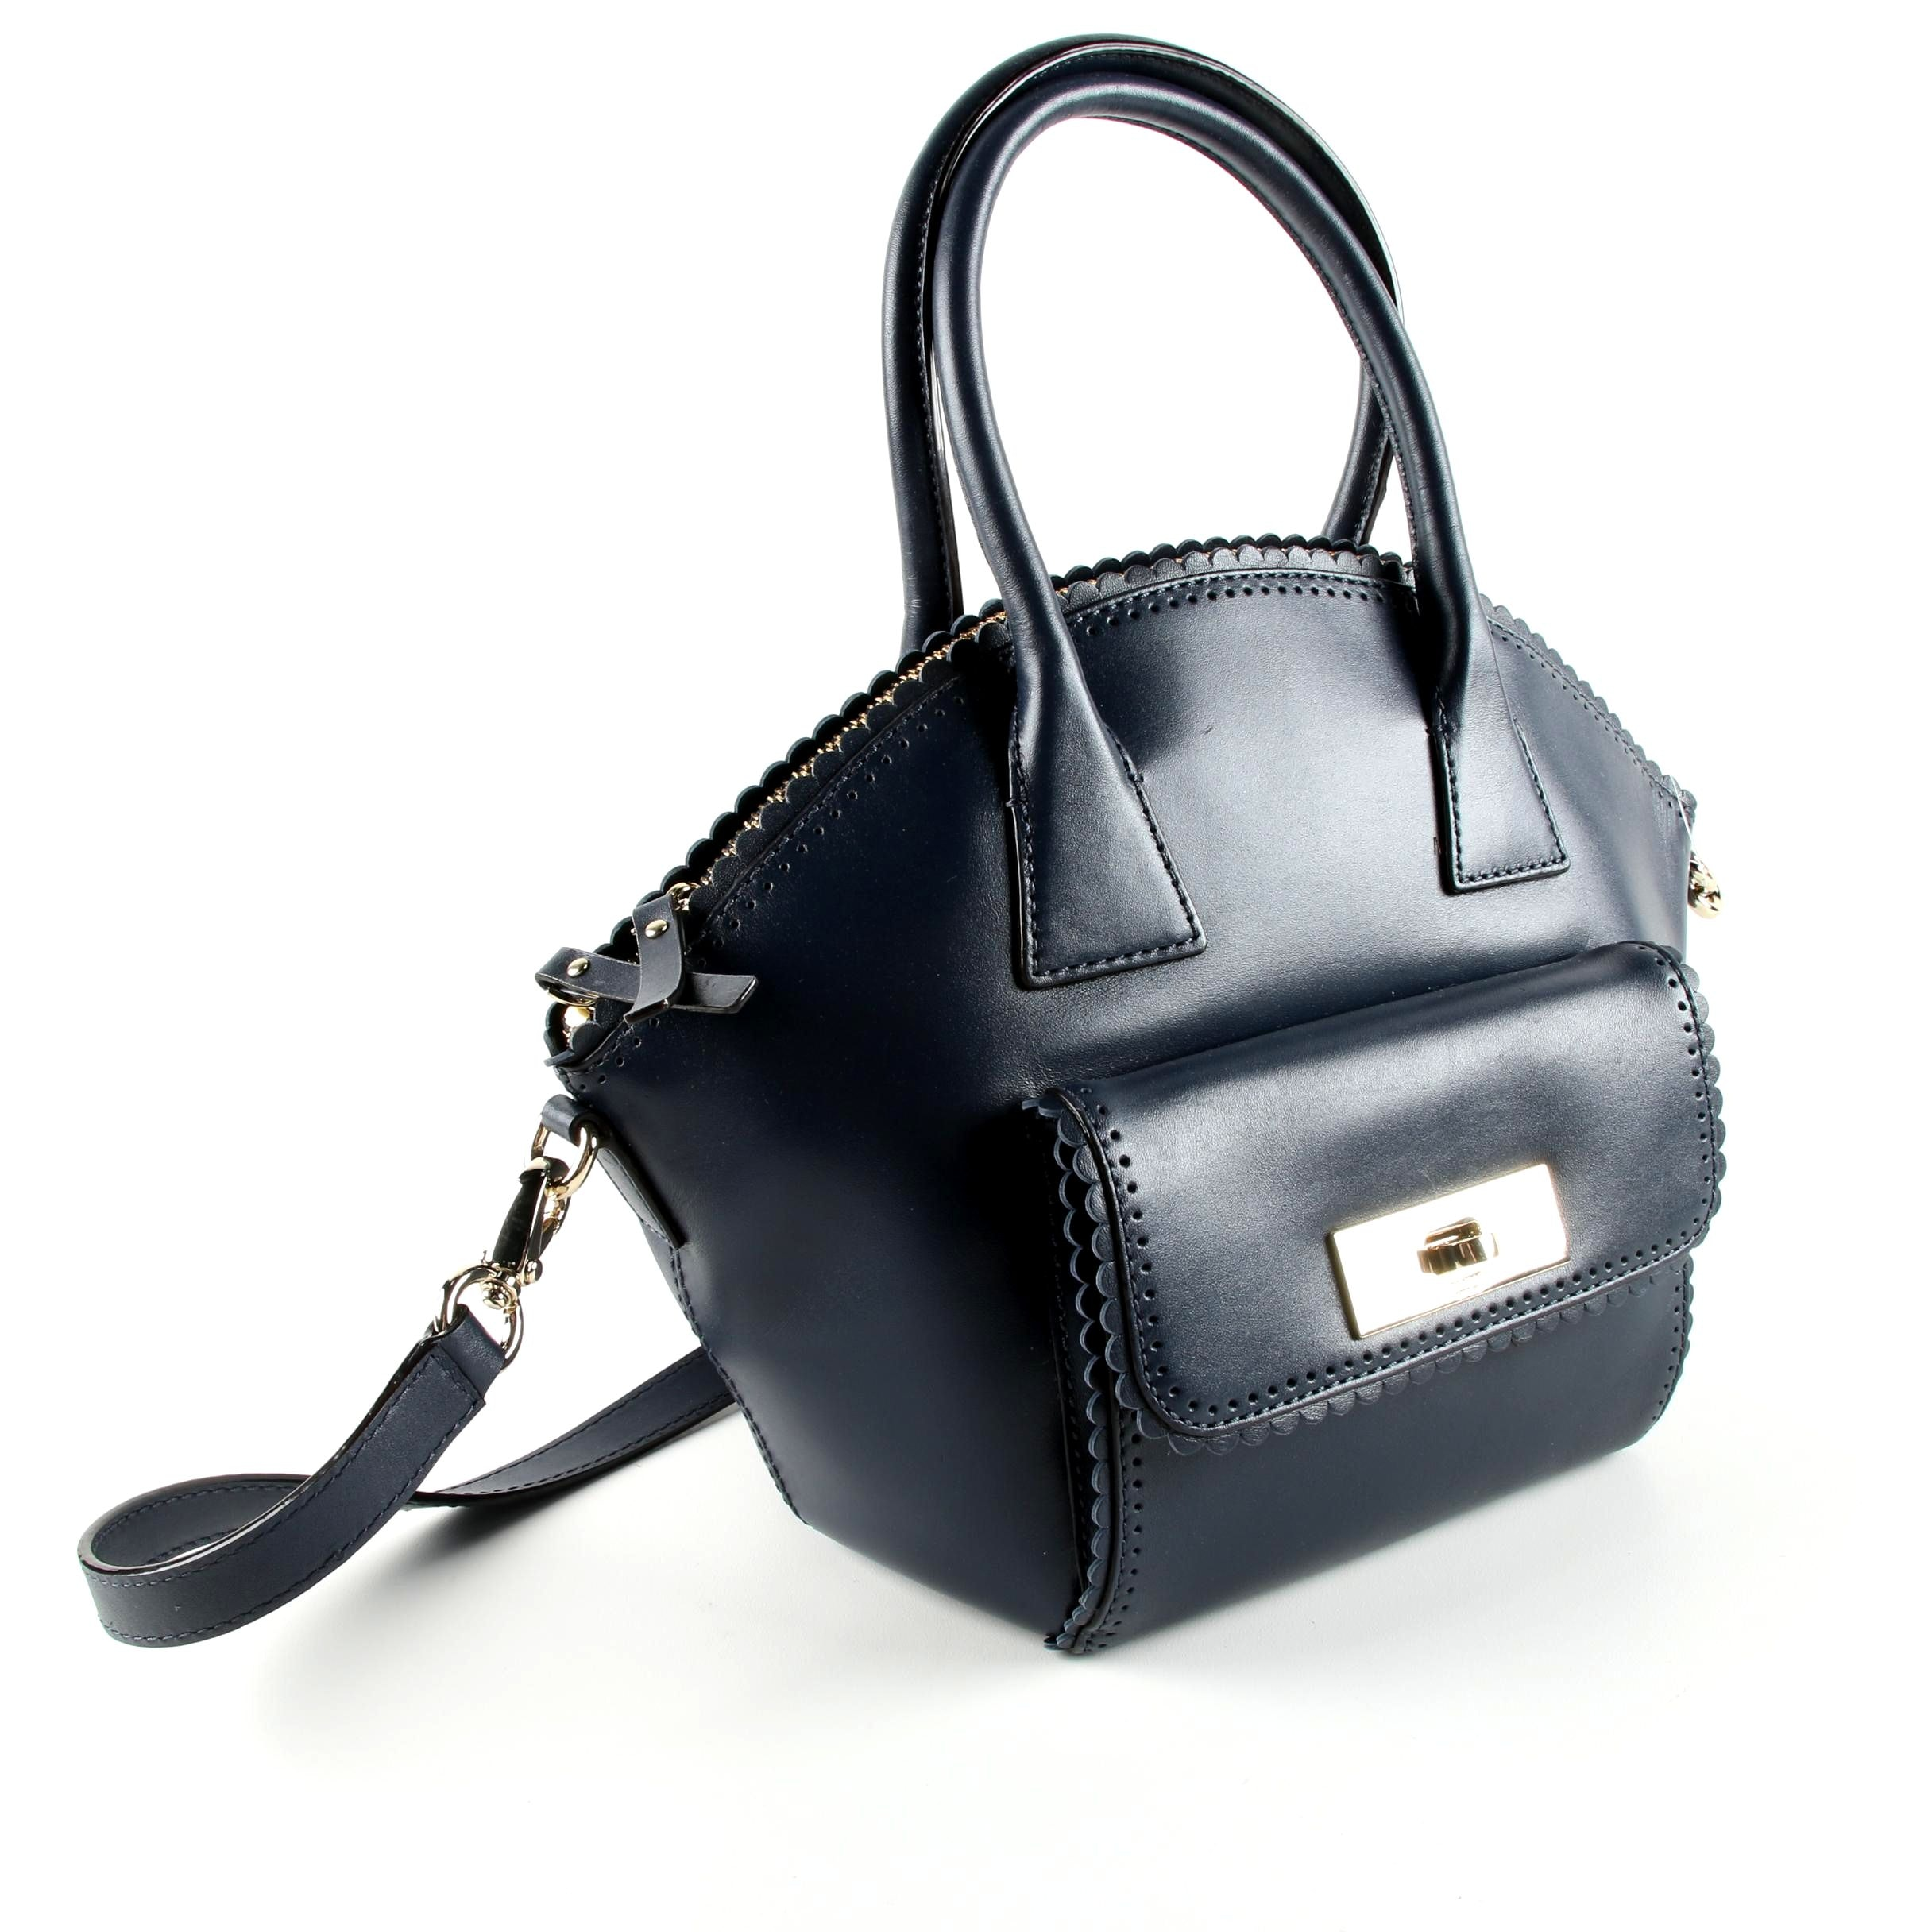 Kate Spade New York Maggie Convertible Midnight Leather Satchel